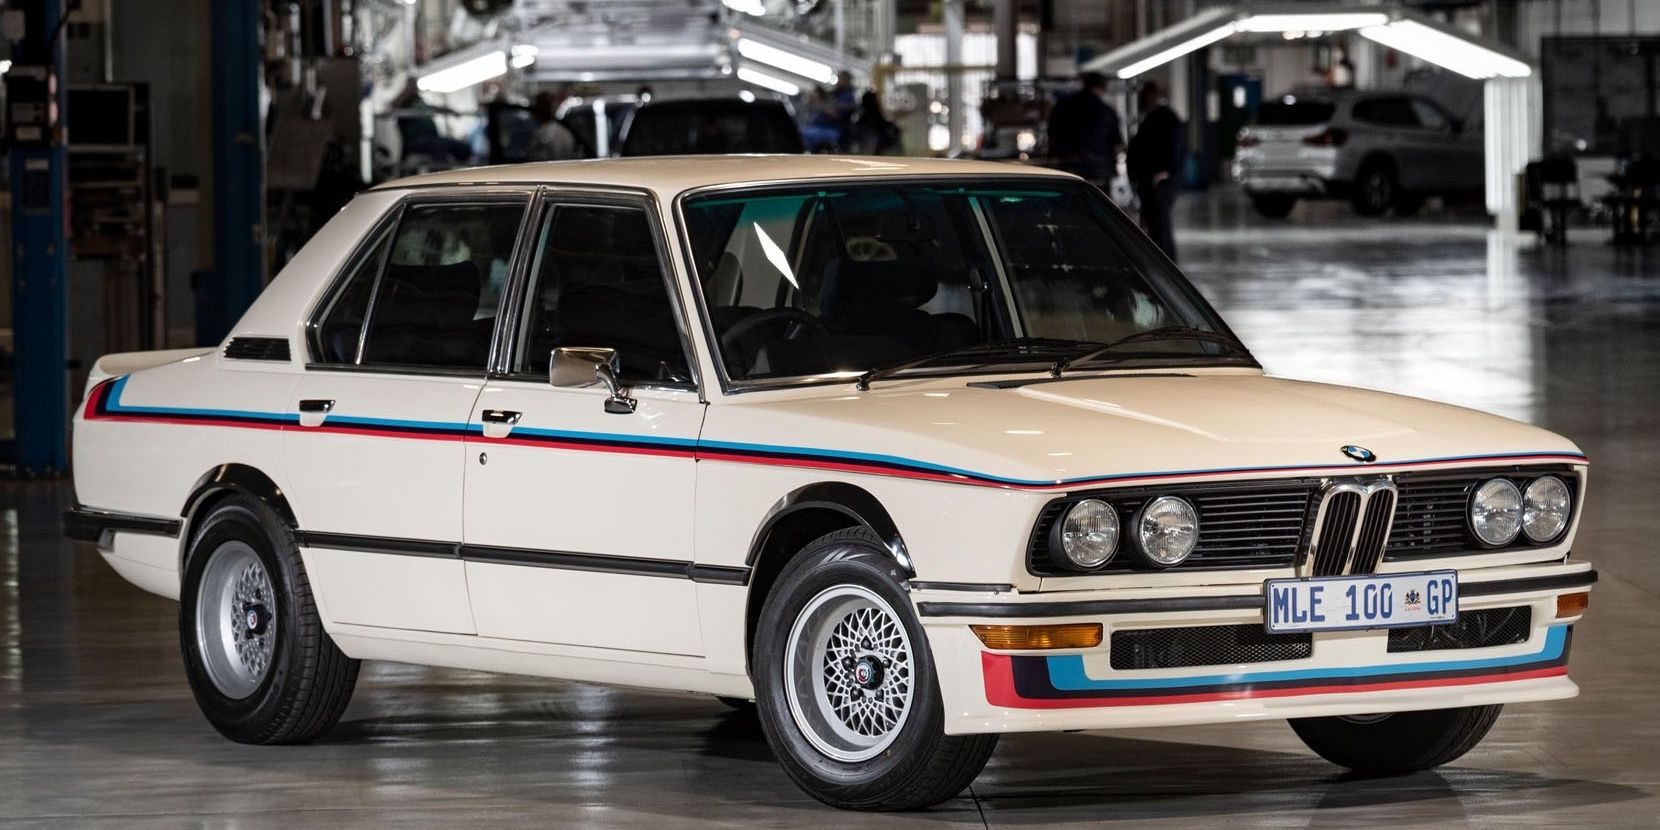 10 Underrated European Classics That Look Stunning When Restored